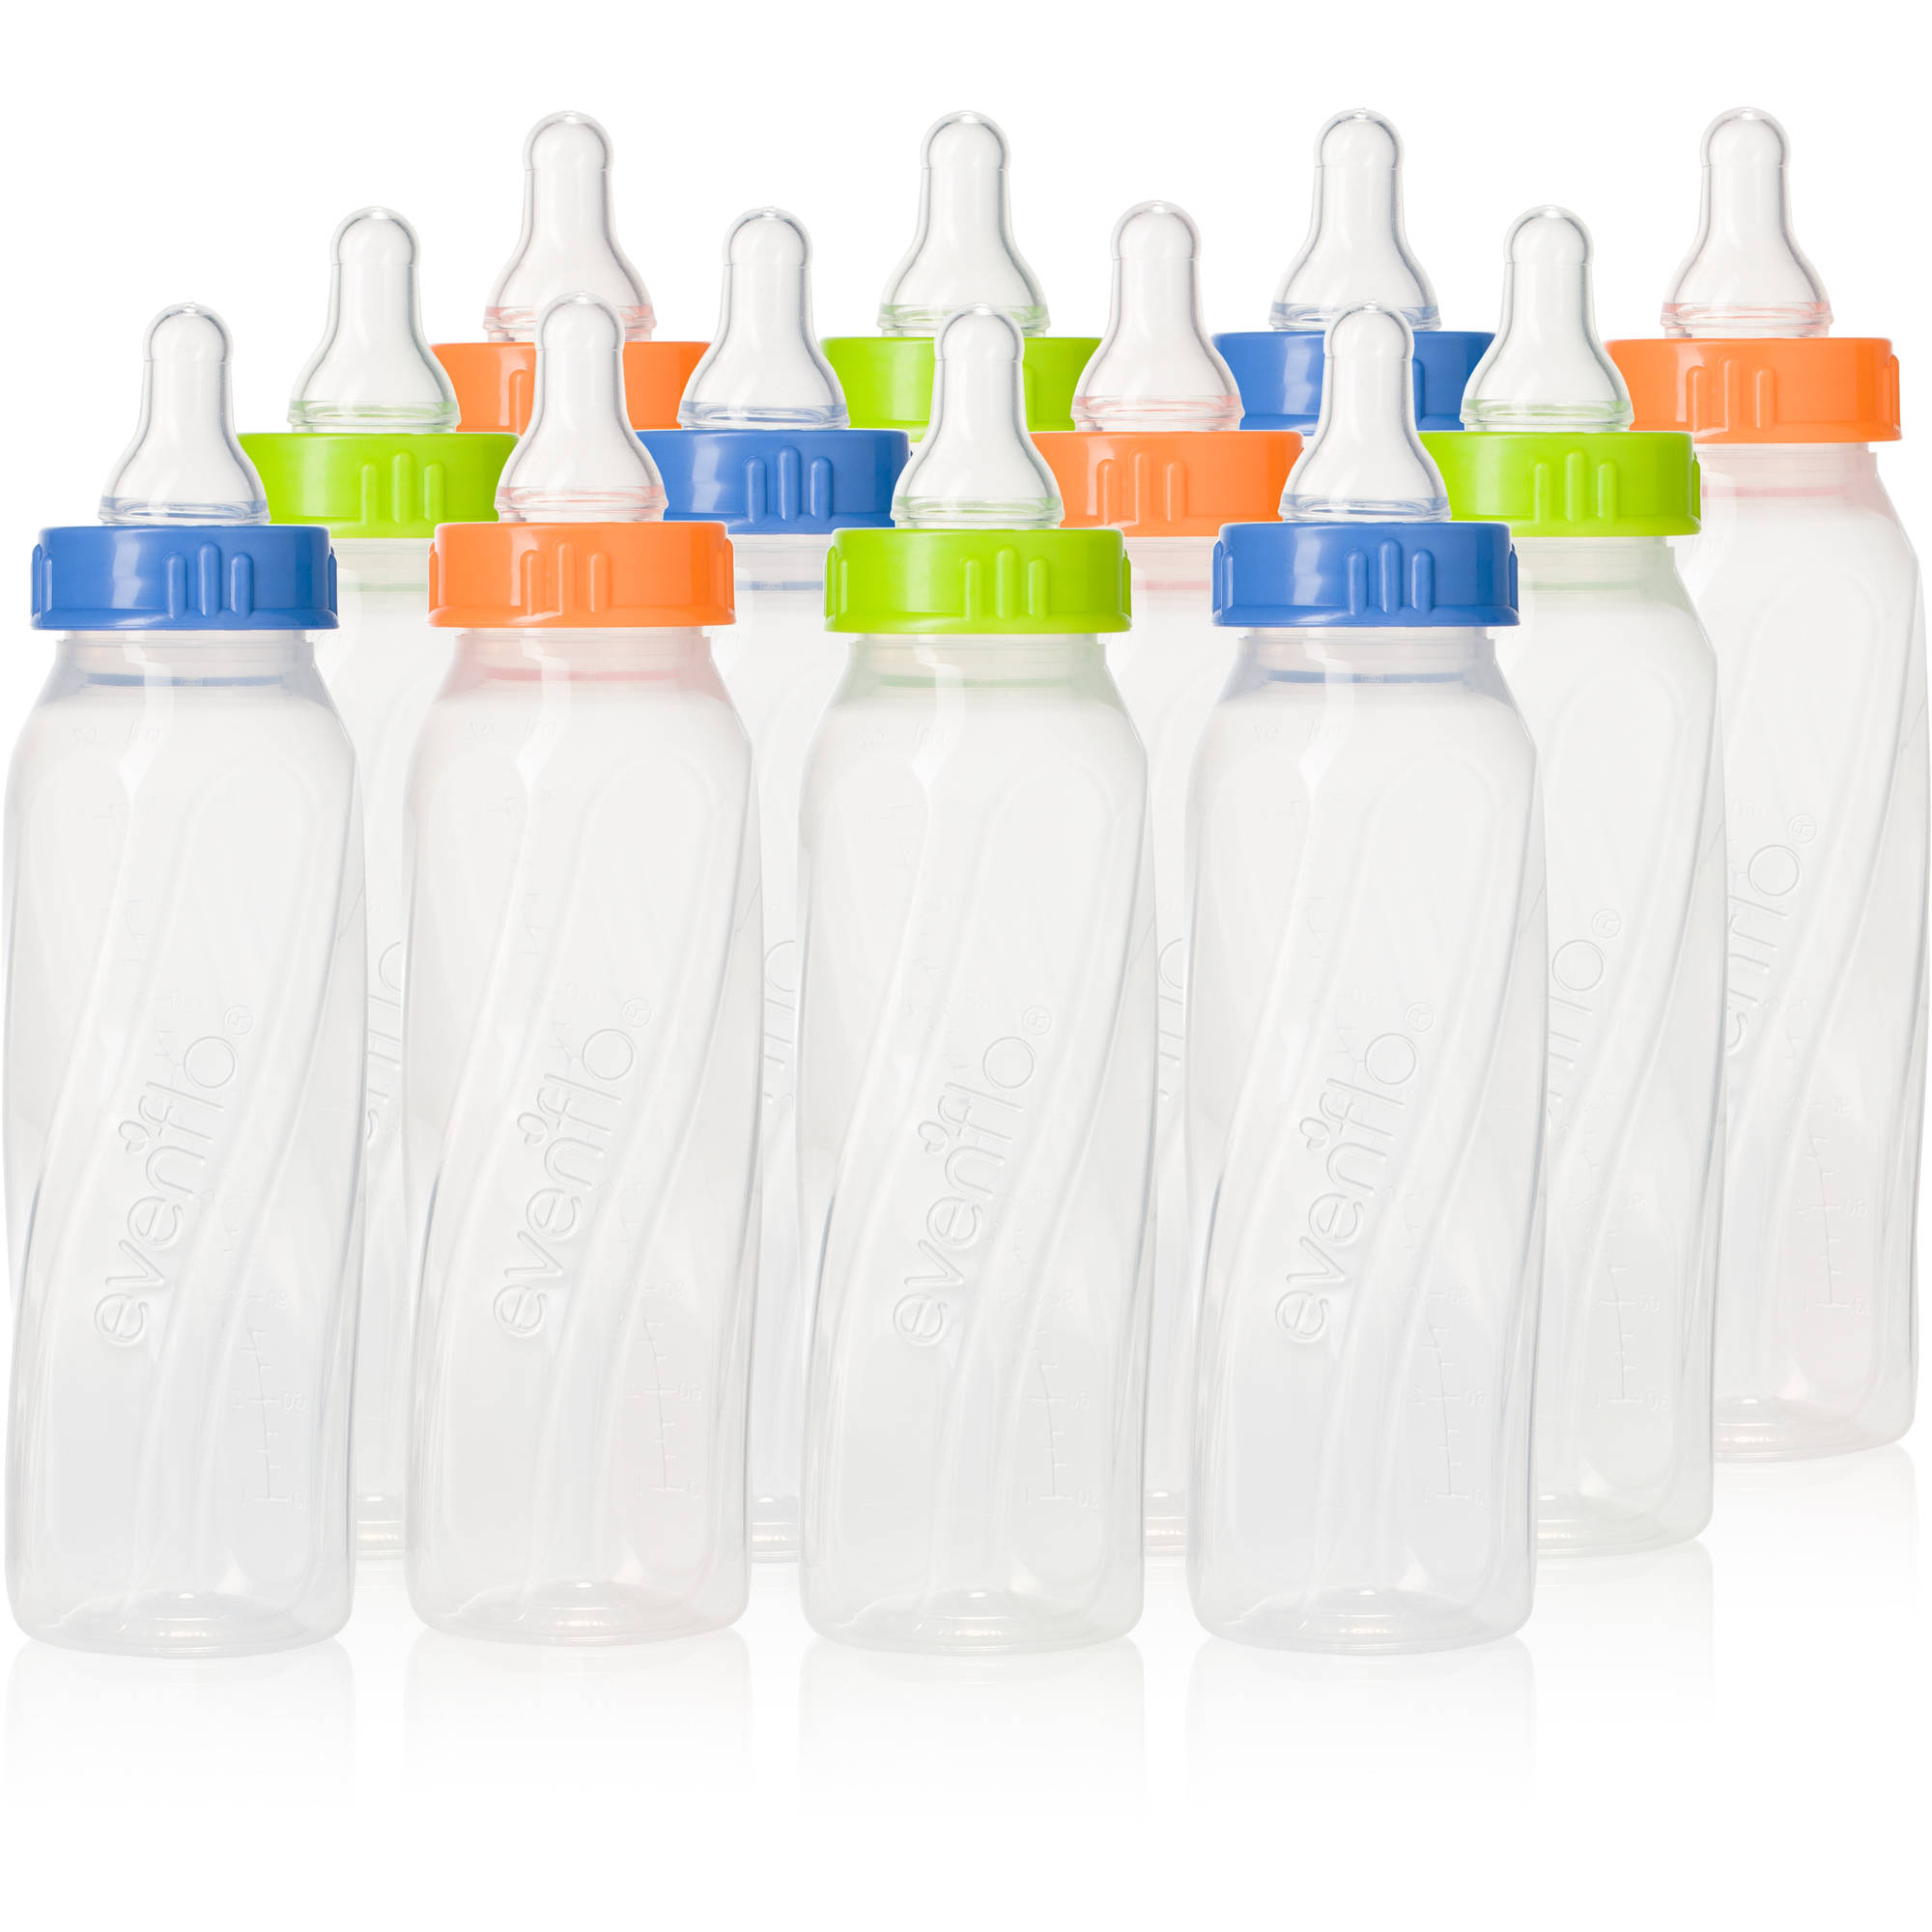 Evenflo Classic Twist 8oz Bottle, Clear, Unisex, 12-Pack, BPA-Free